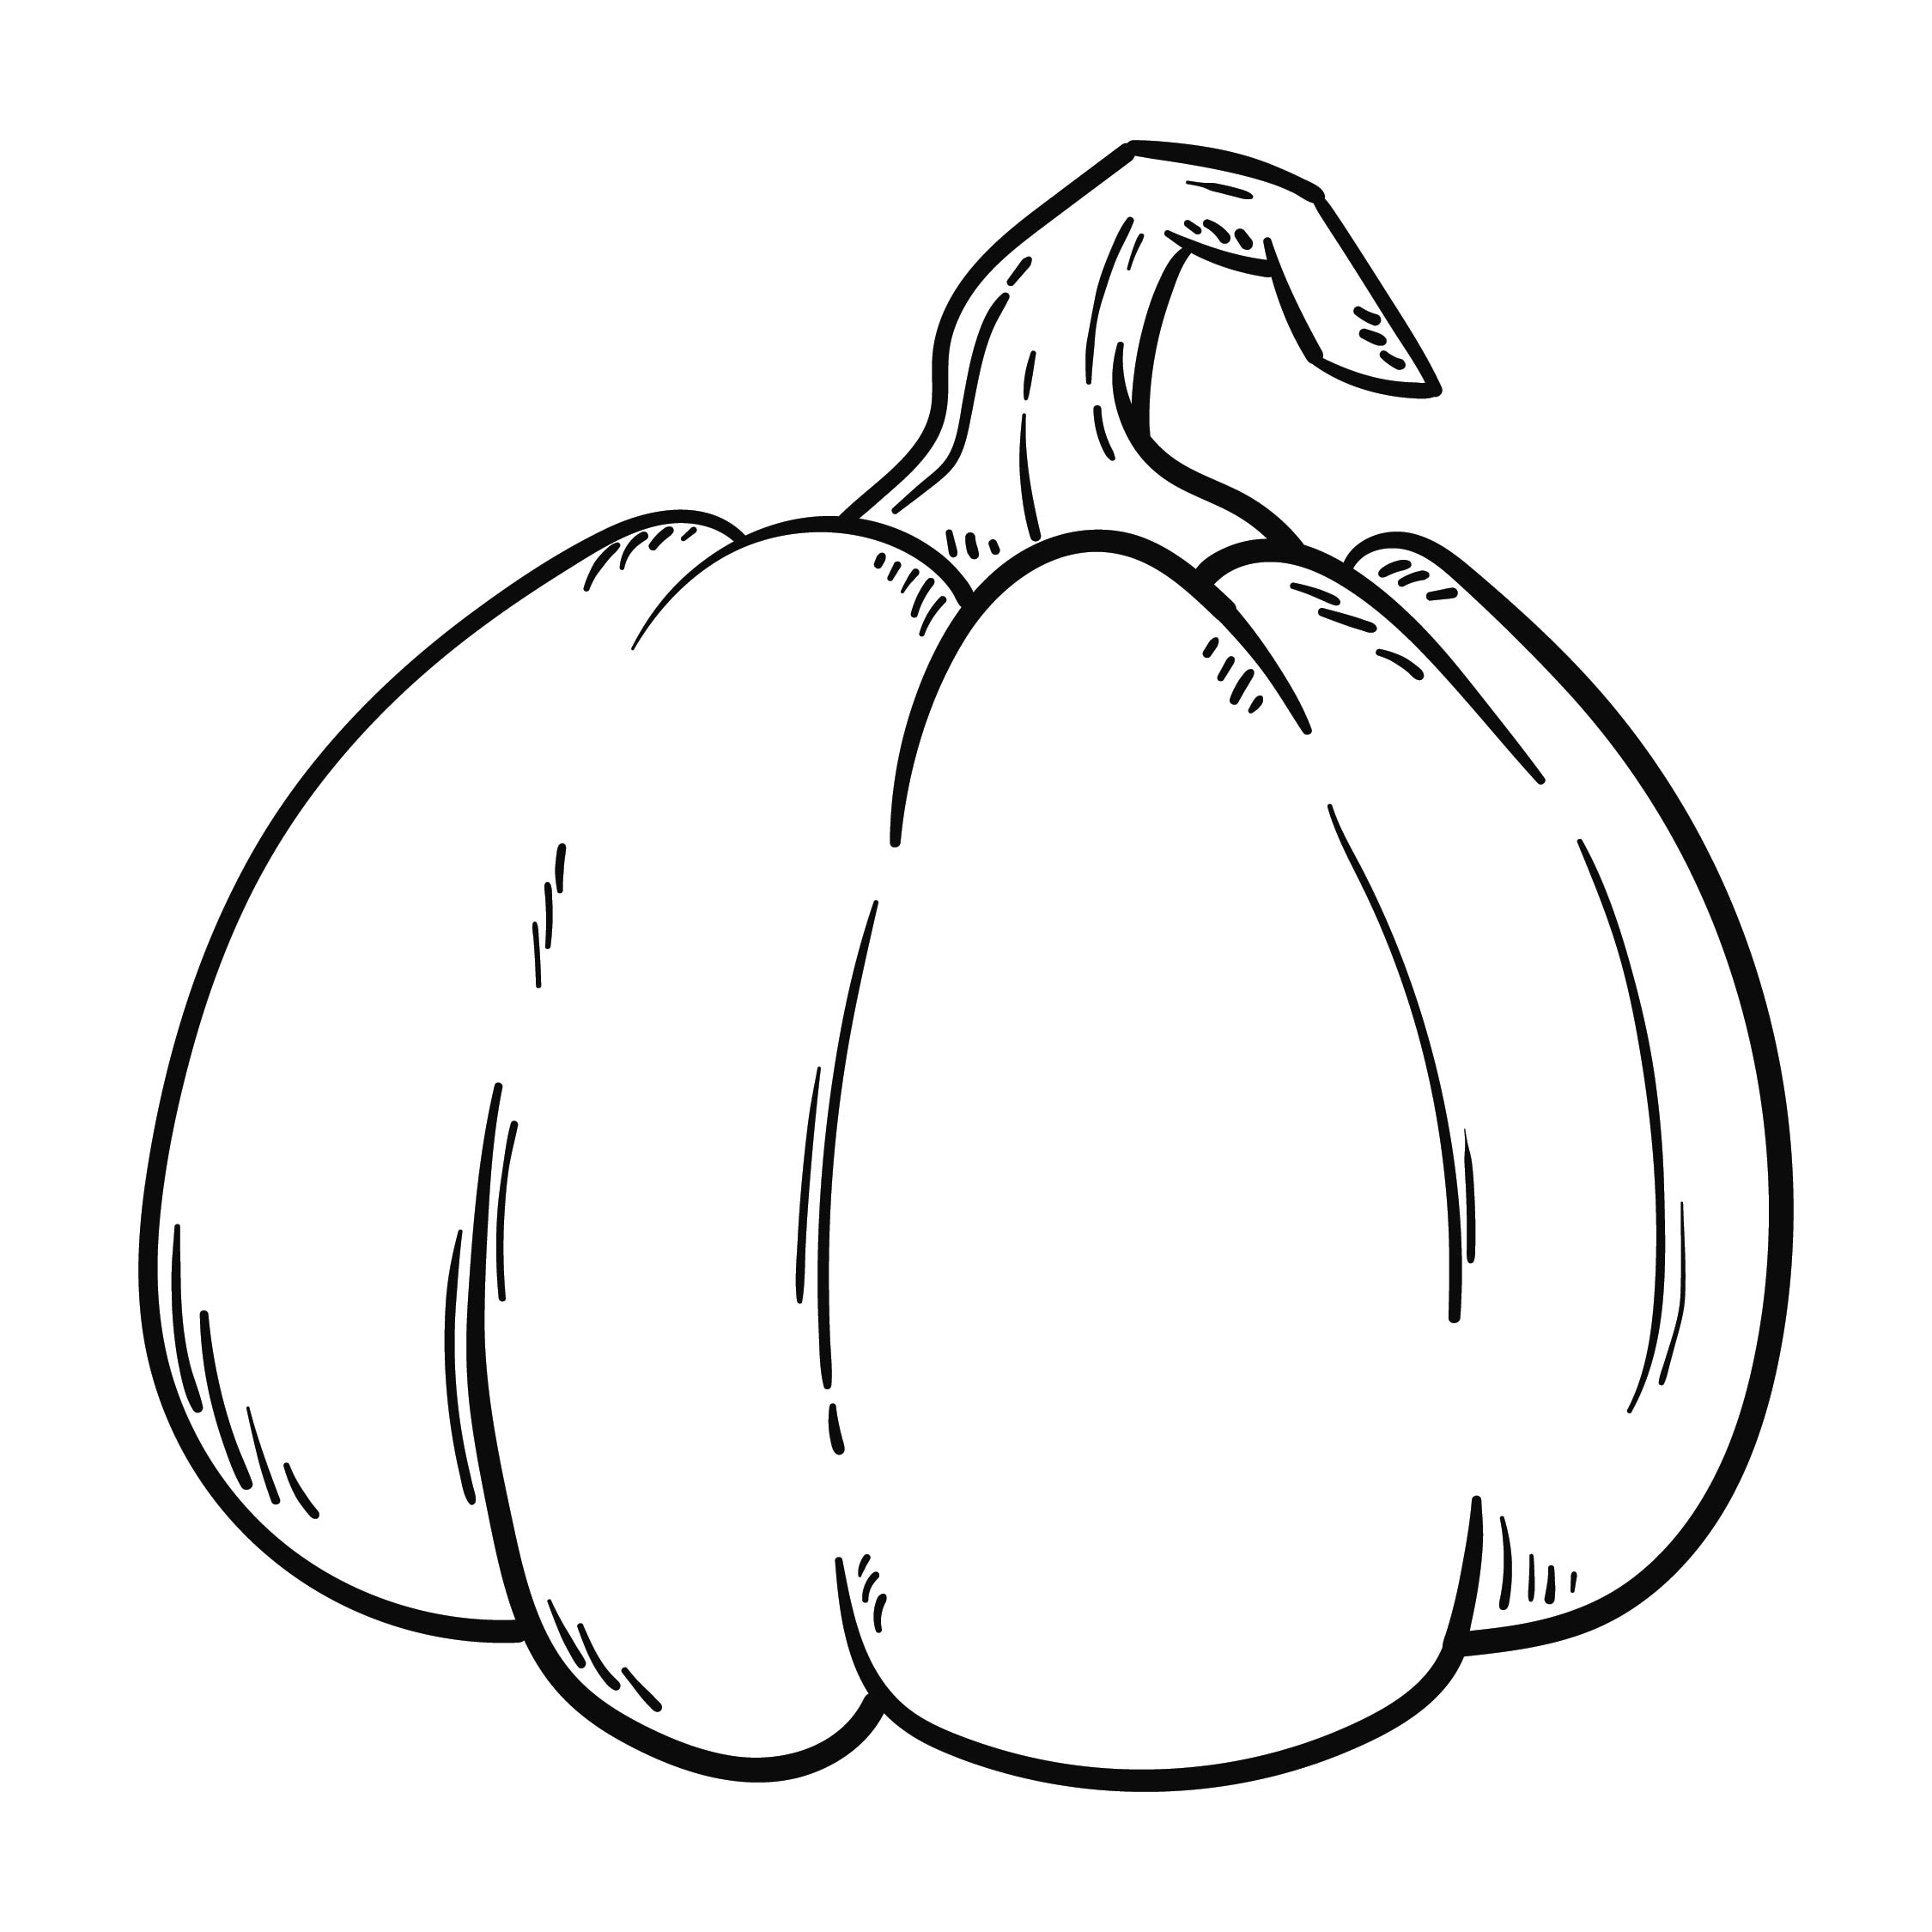 5 Best Images of Free Halloween Printable Pumpkins Outline ...